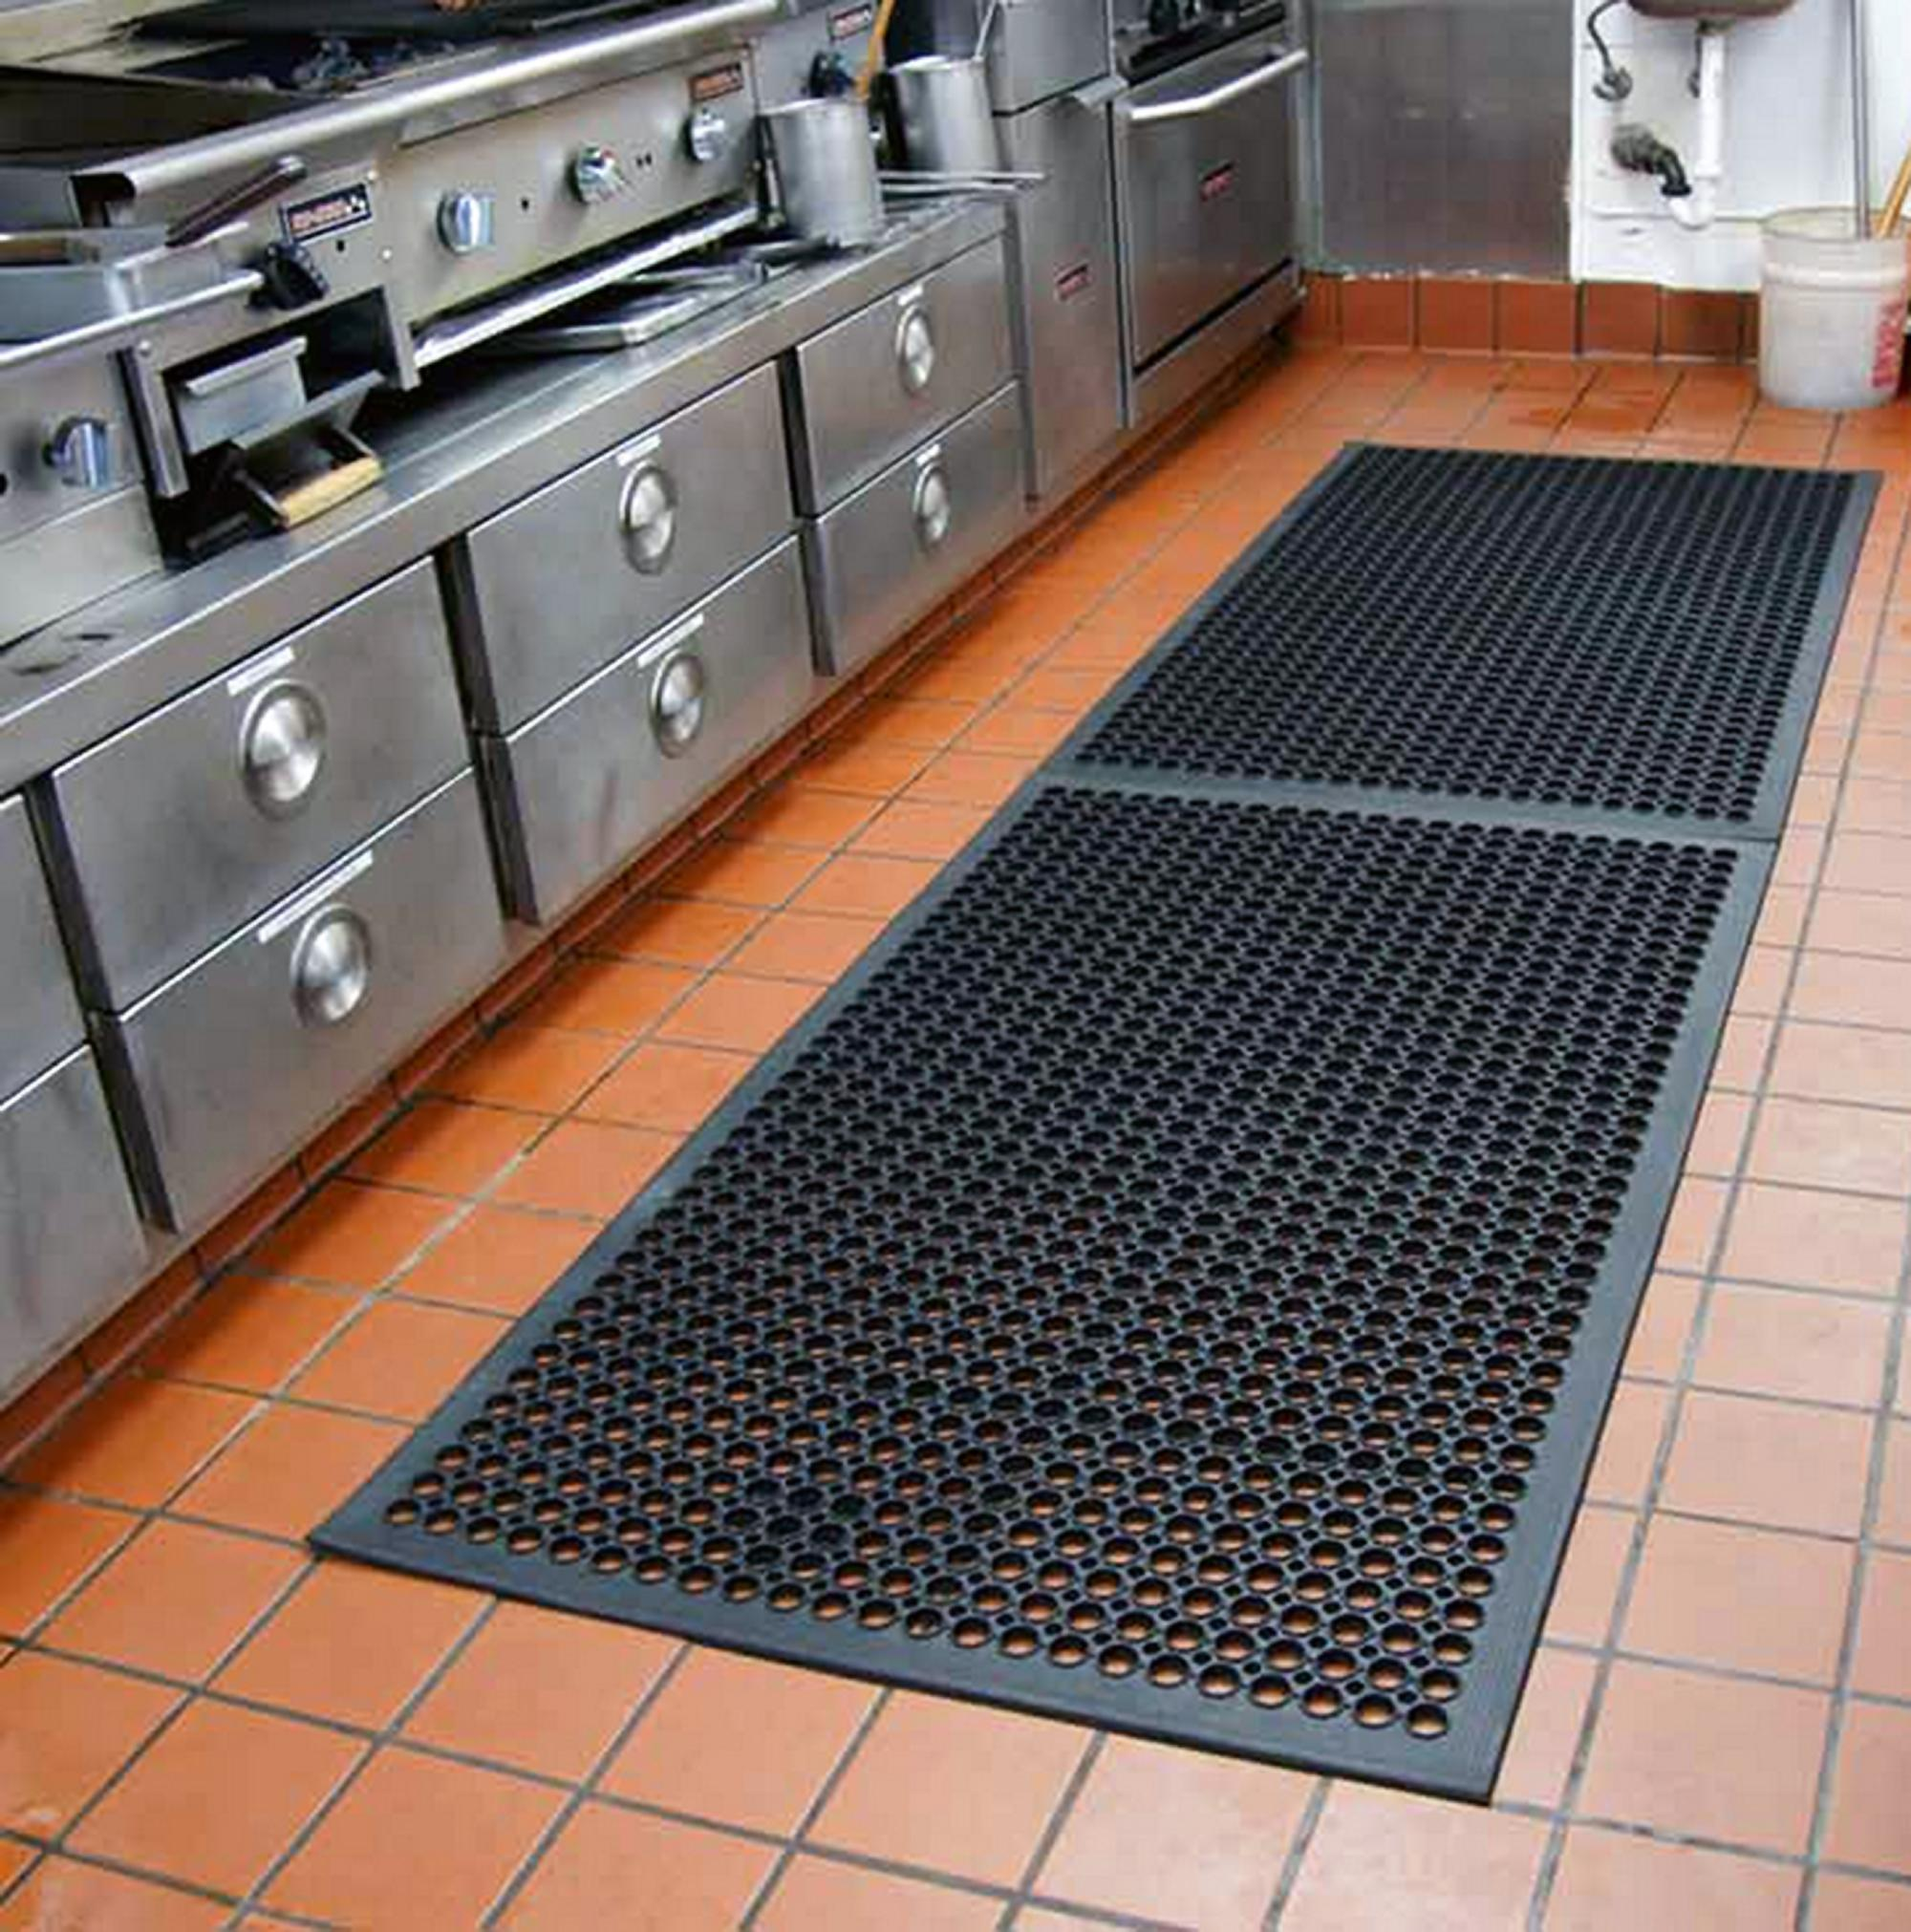 studded tiles steel rubber kitchen flooring architectural intro metal control industry ss view studs business mat panel mats stainless elevator htm in